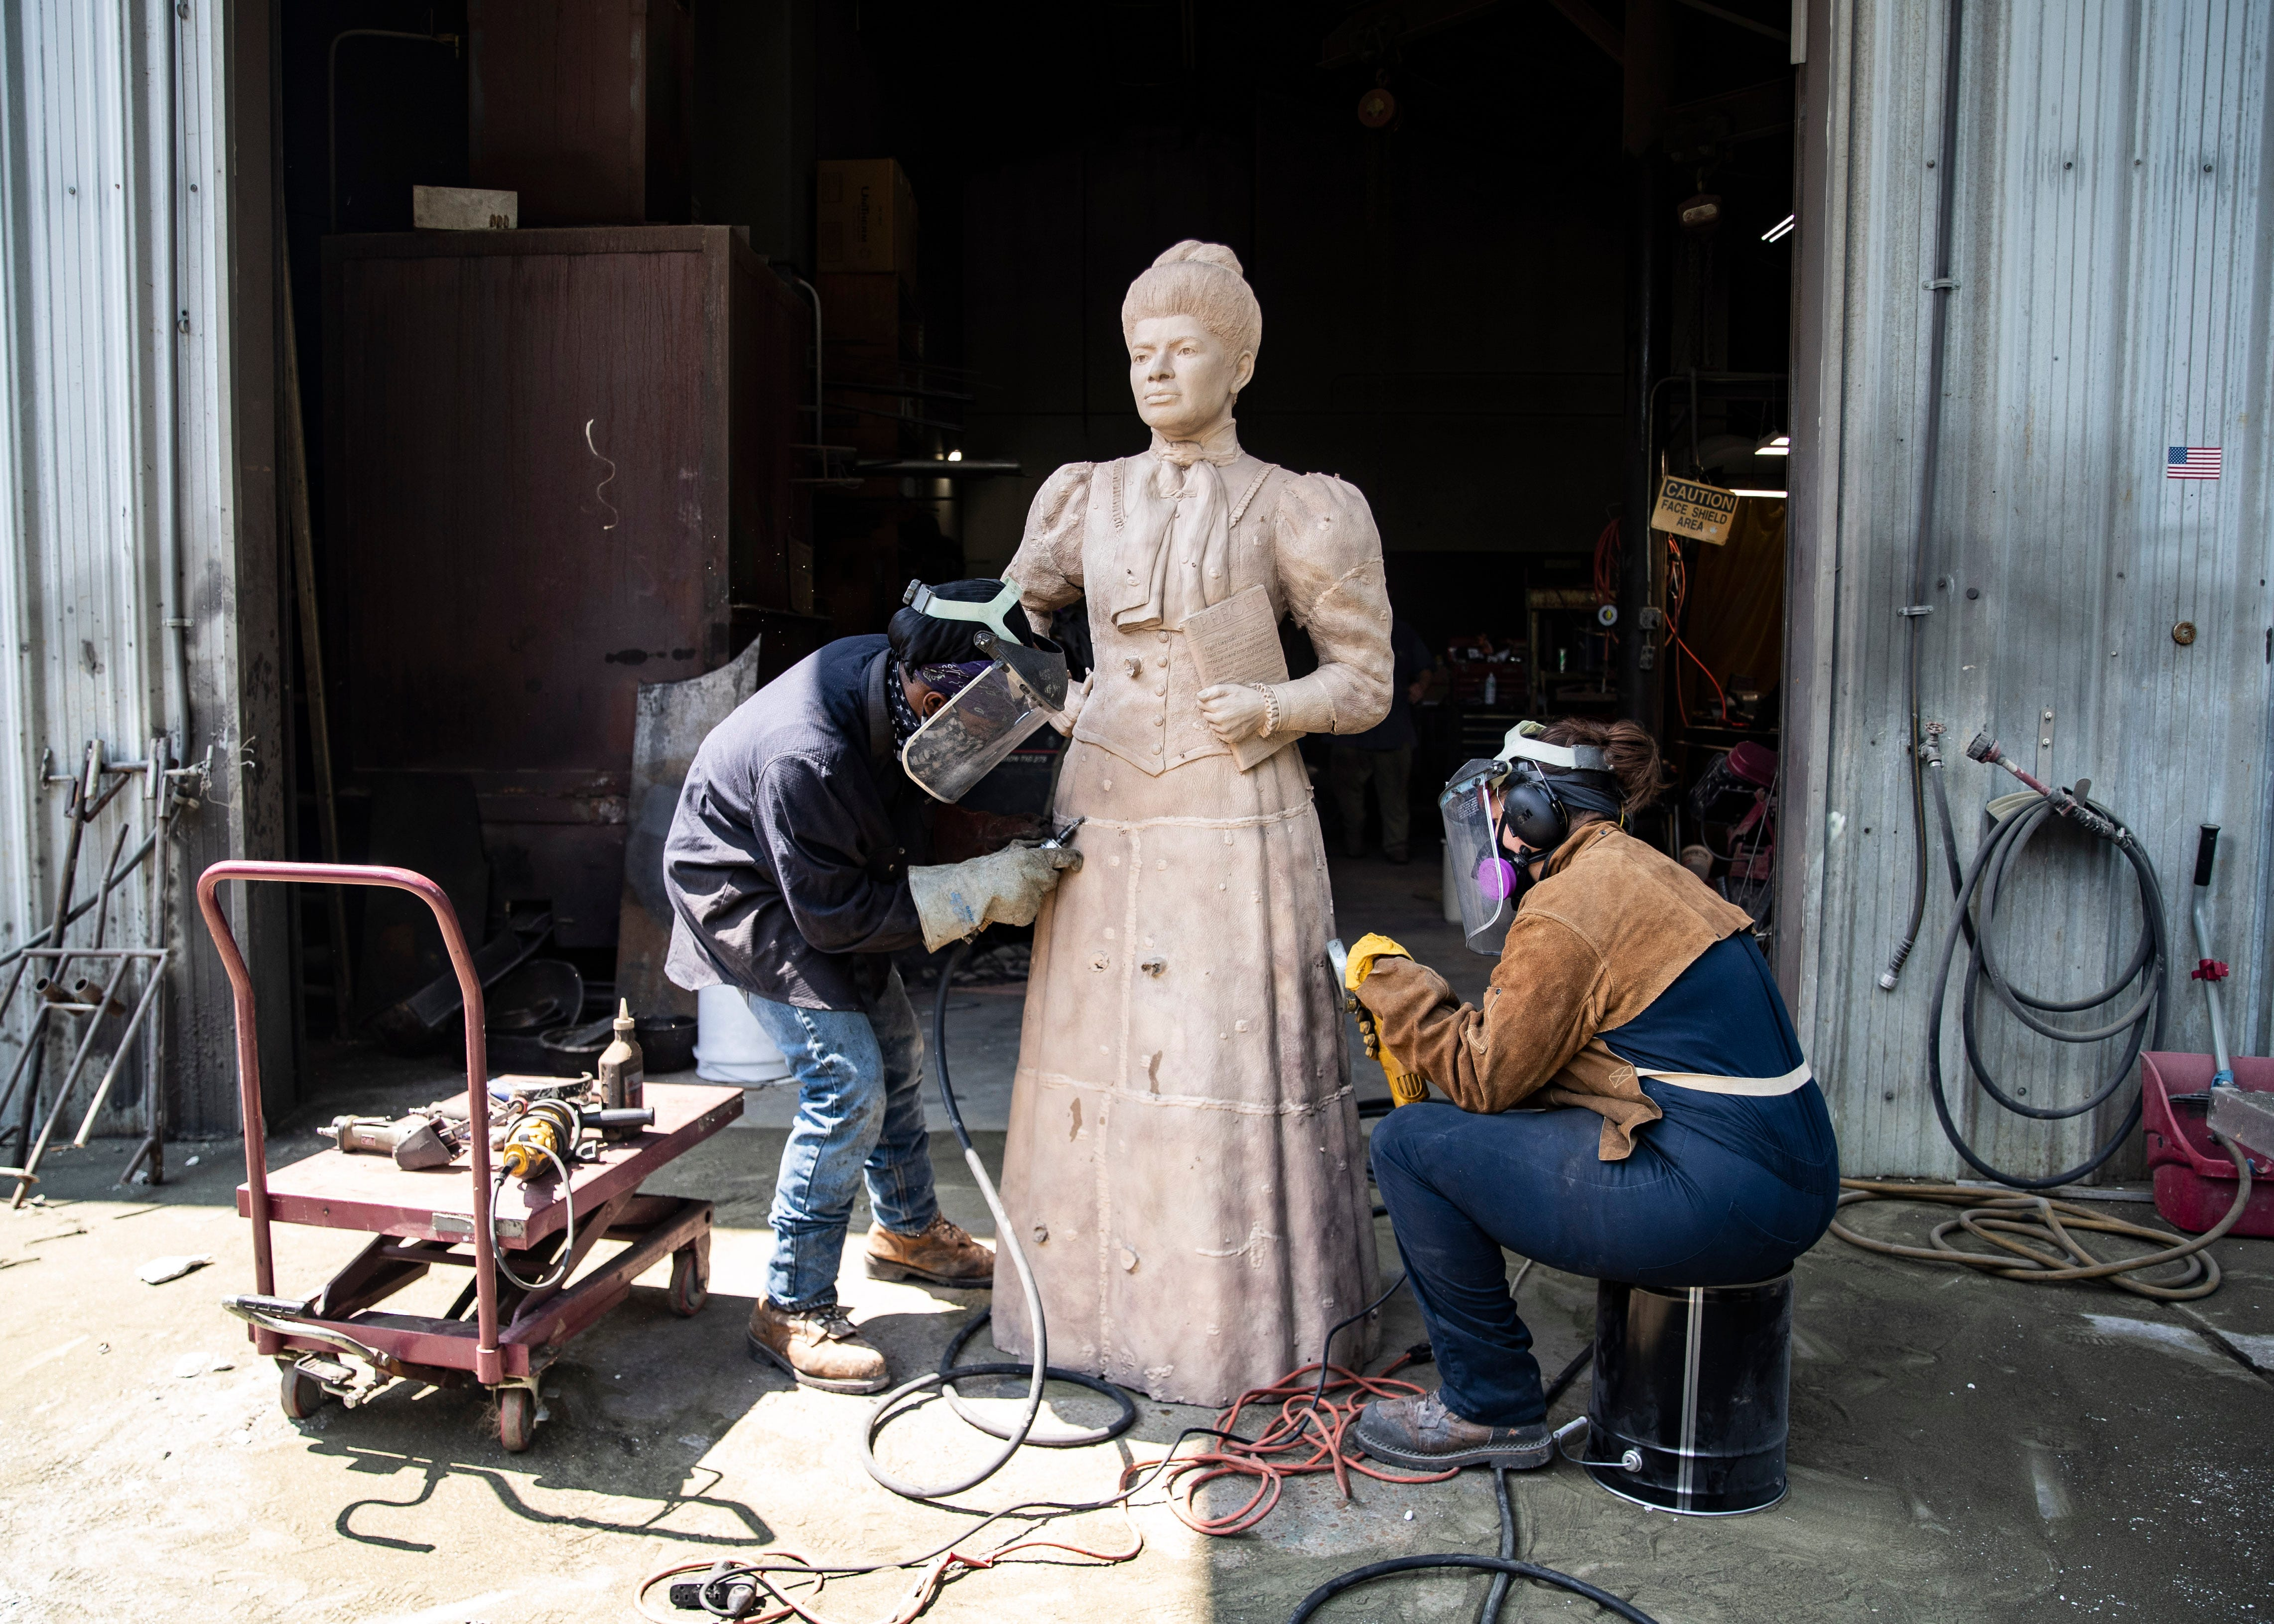 Artisans Terrance Payne and Marda Mesler use drills during the bronze chasing process to create the statue of  Ida B. Wells-Barnett, the African American civil rights advocate and journalist who fought against racism, segregation and lynching, at the Lugar Bronze Foundry in Eads, Tenn., on Tuesday, May 26, 2021.